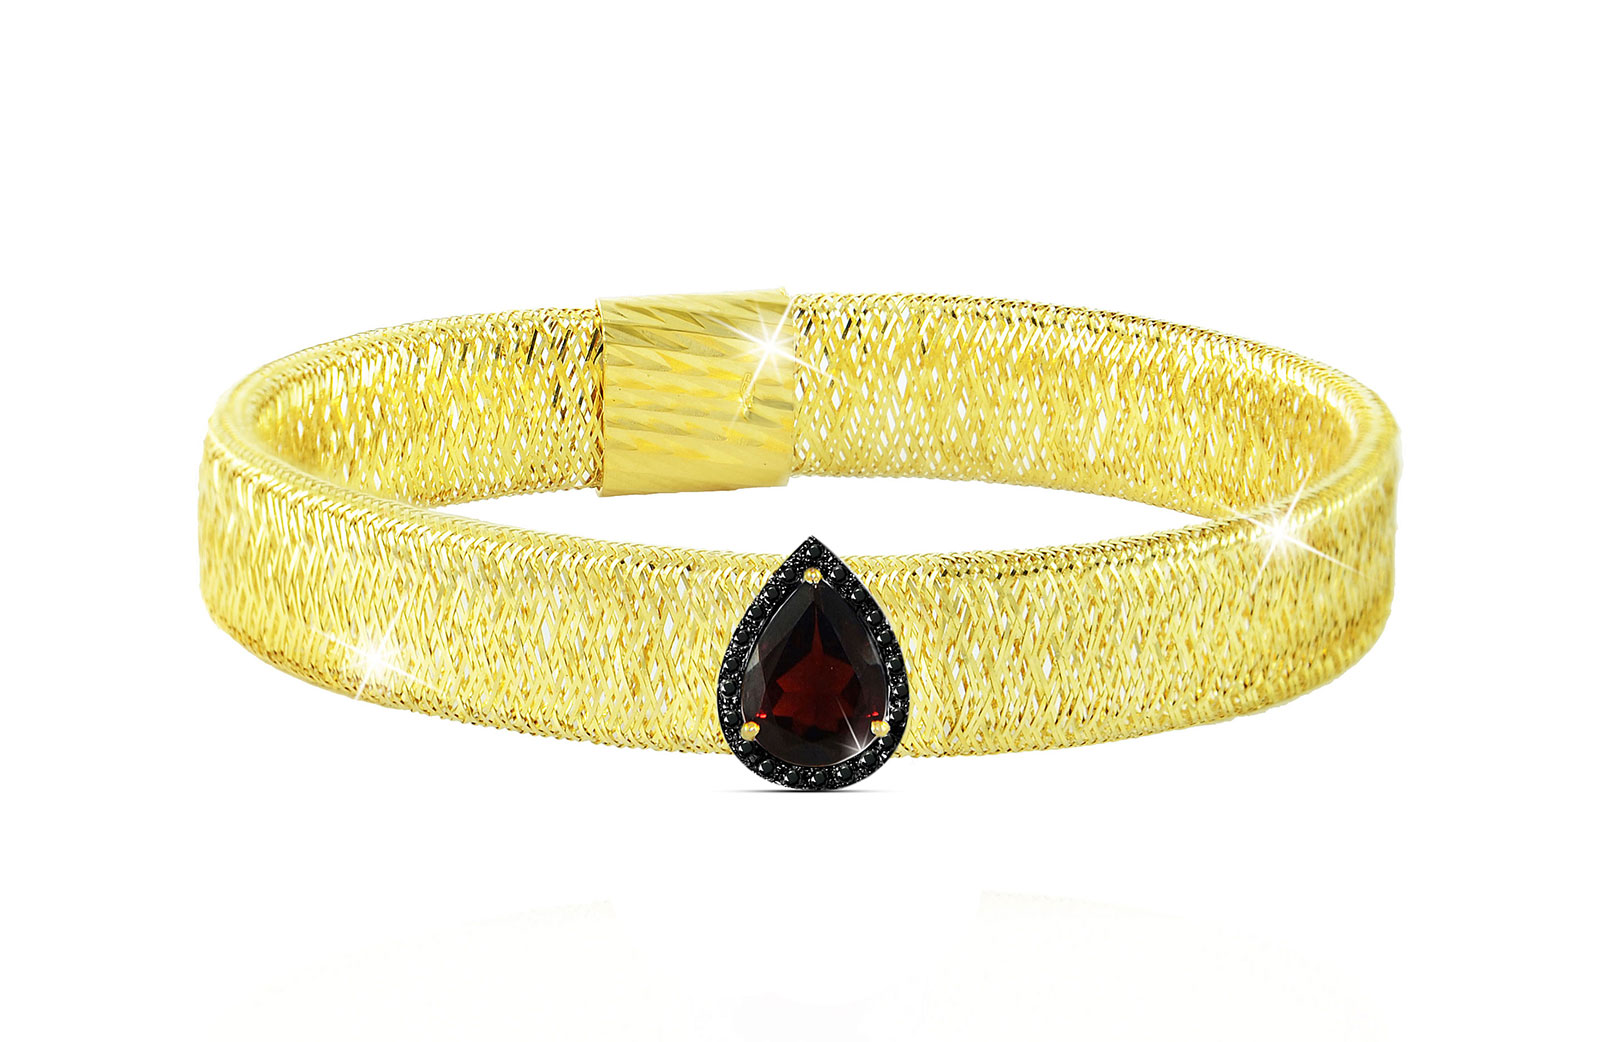 Vera Perla 18K Gold 0.12ct Black Diamonds, Garnet Mesh Bracelet